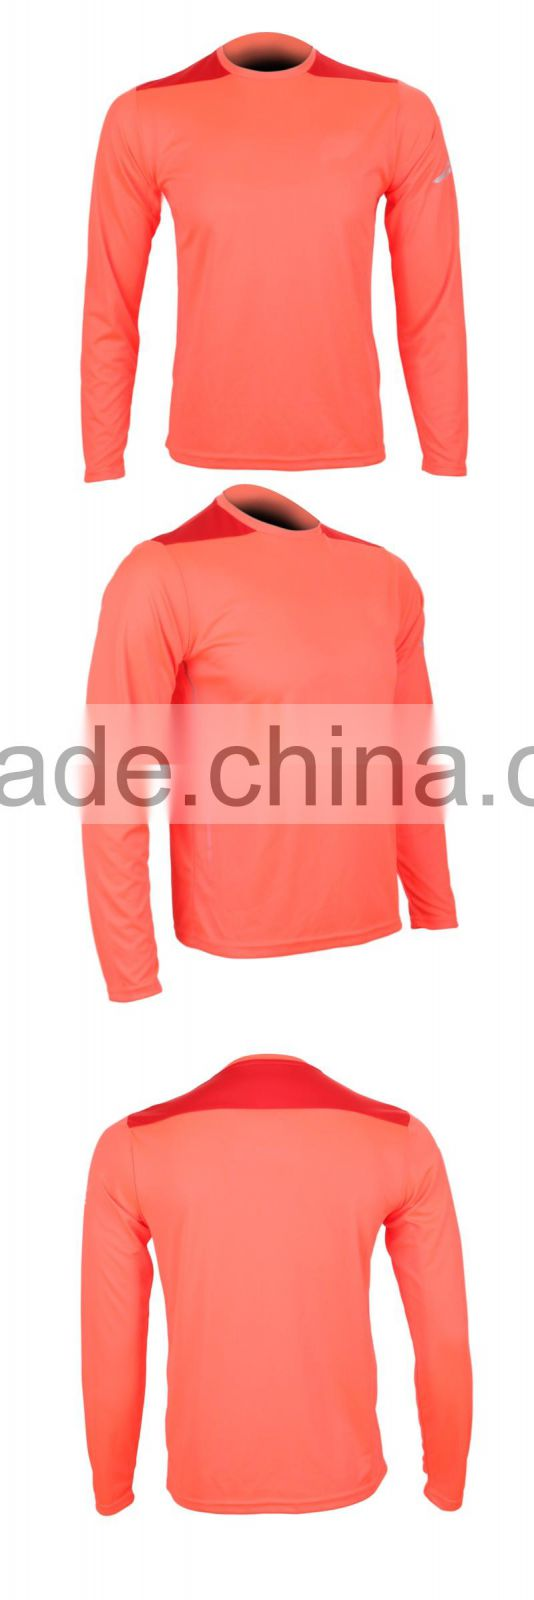 Wholesale Mens Plain Long Sleeve Thermal T Shirt for Sports Fitness